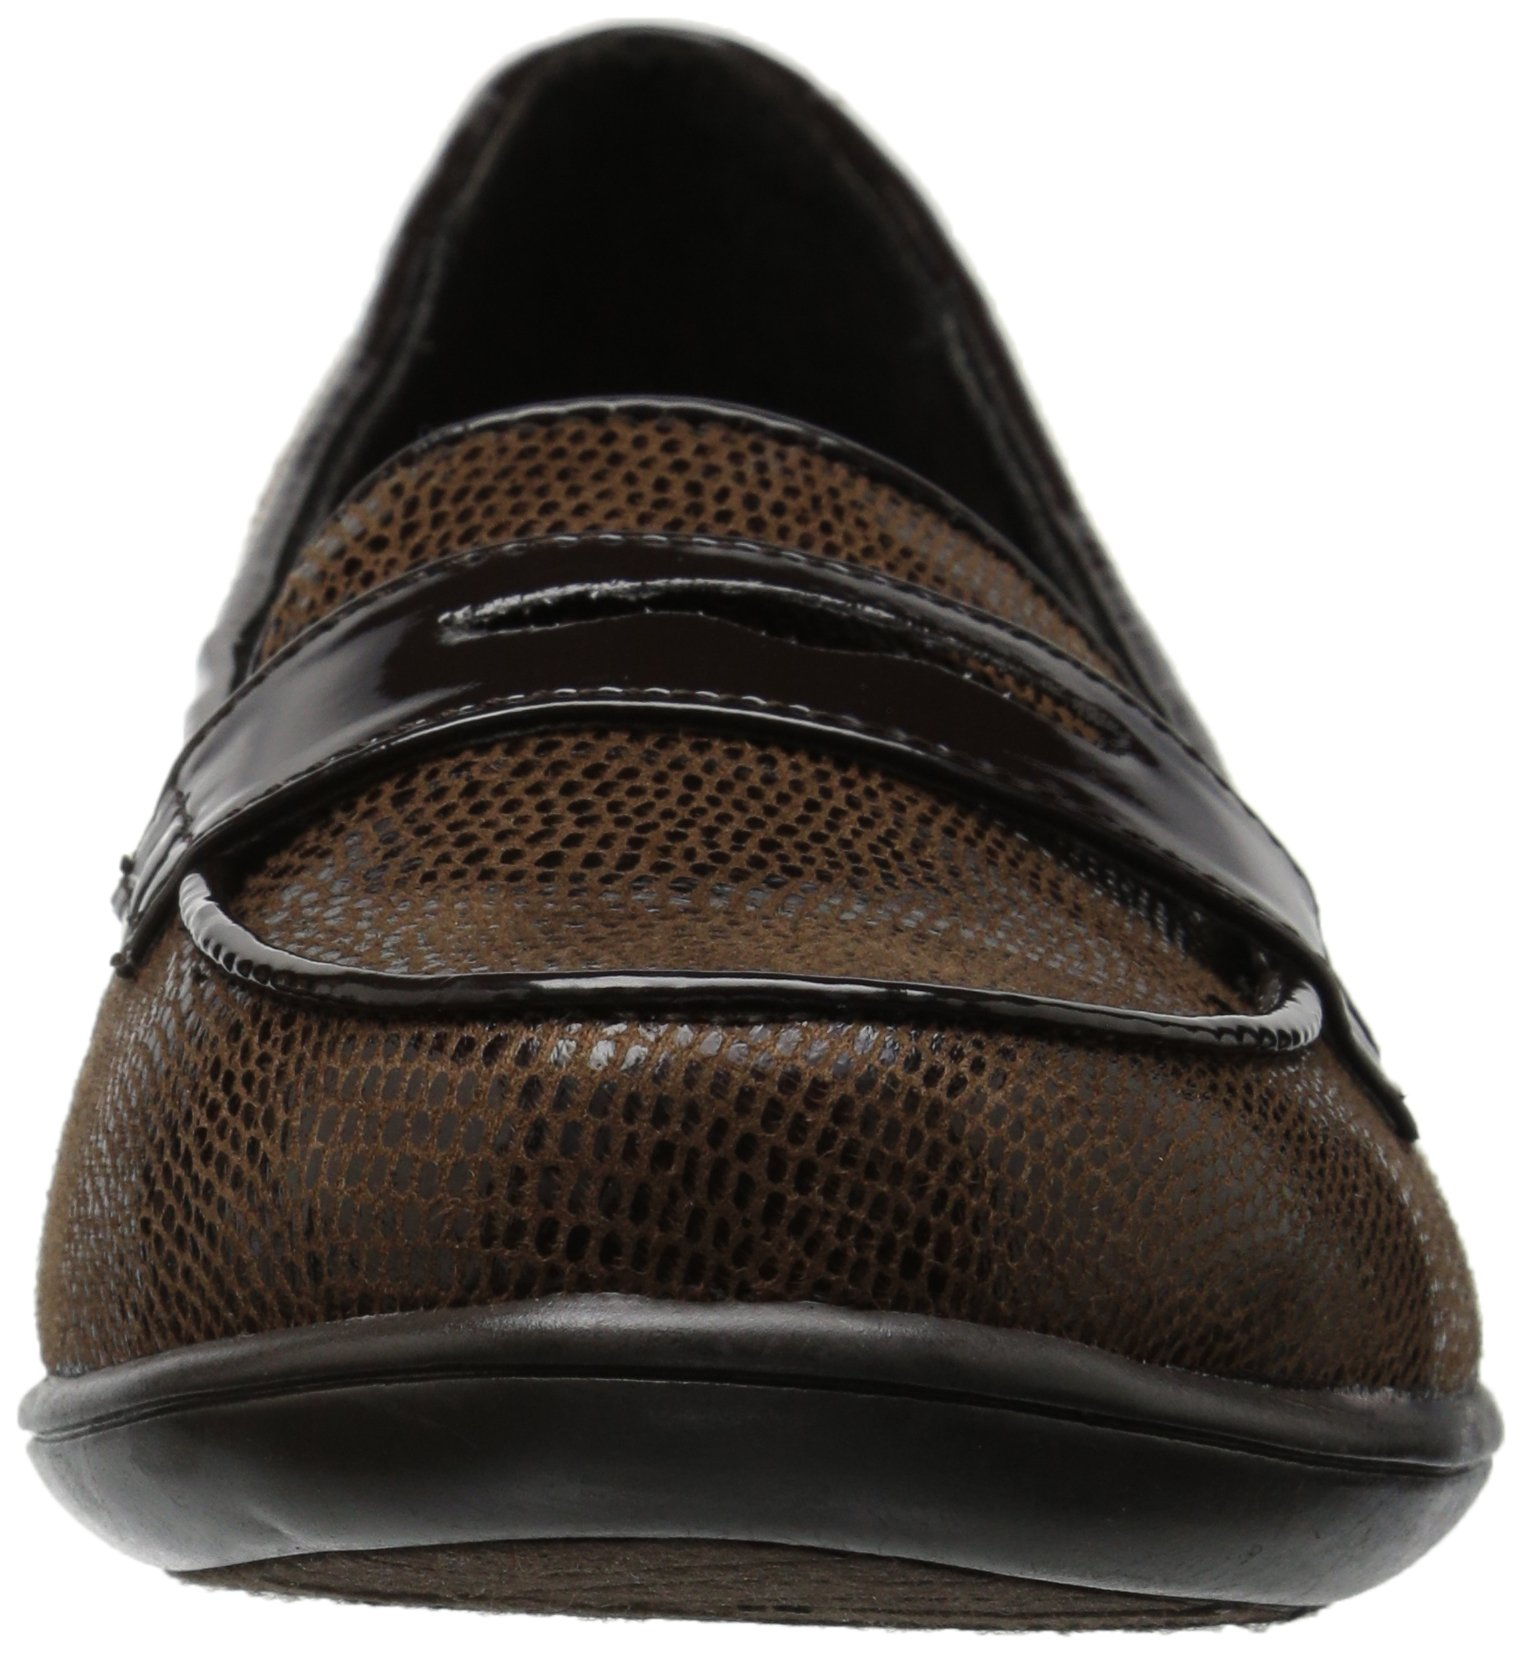 Soft Style by Hush Puppies Women's Daly Penny Loafer, Dark Brown Lizard/Patent, 8.5 W US by Soft Style (Image #4)